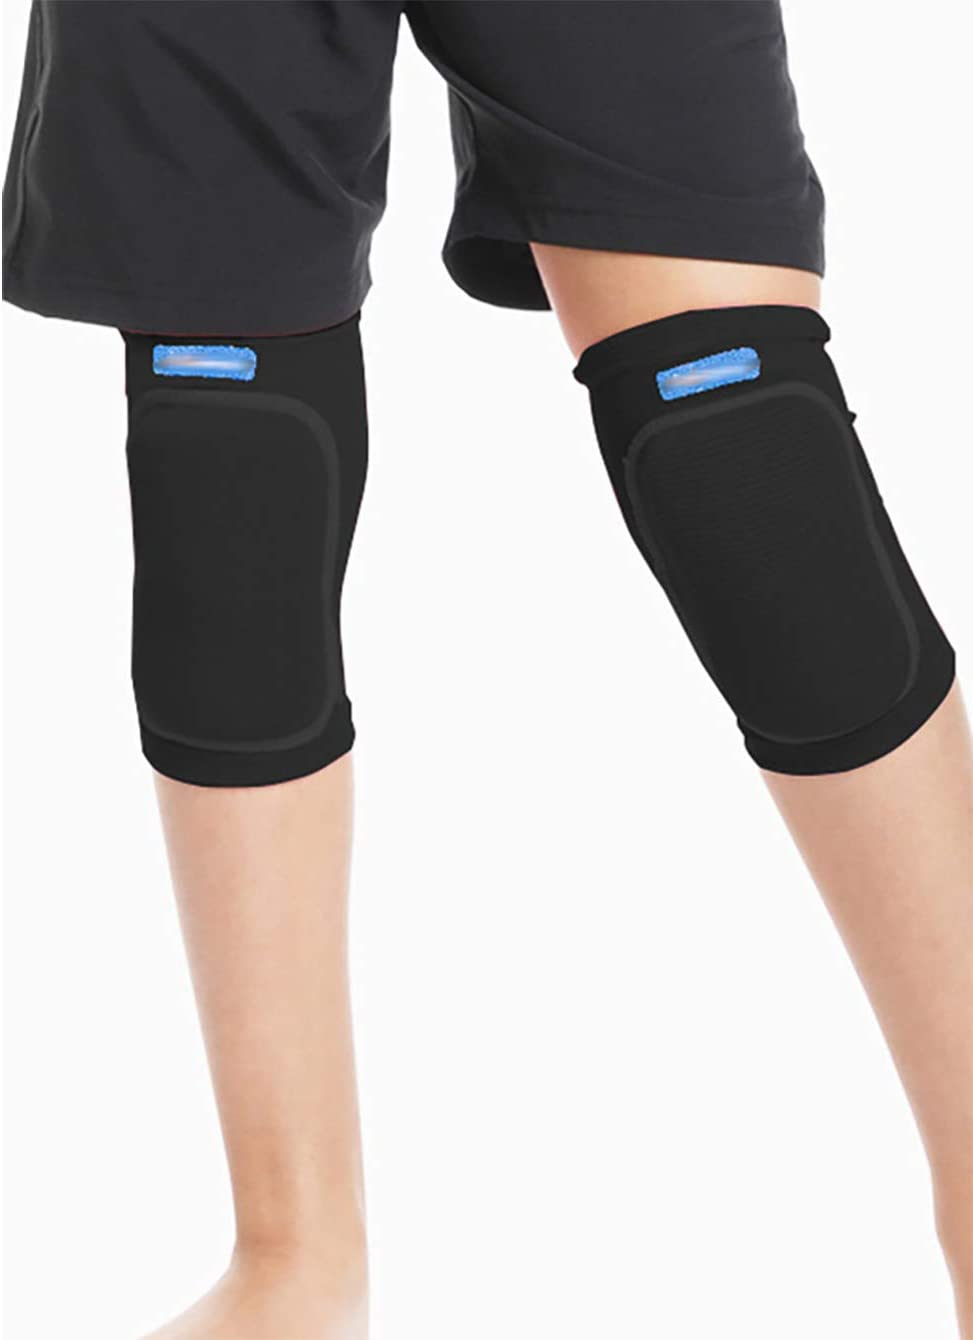 AIBEARTY 1 Pair Kids Protective Knee Pads Non-Slip Breathable Flexible Elastic Knee Sleeve Pad Protector for Volleyball Dance Basketball Baseball Wrestling Cycling Skiing